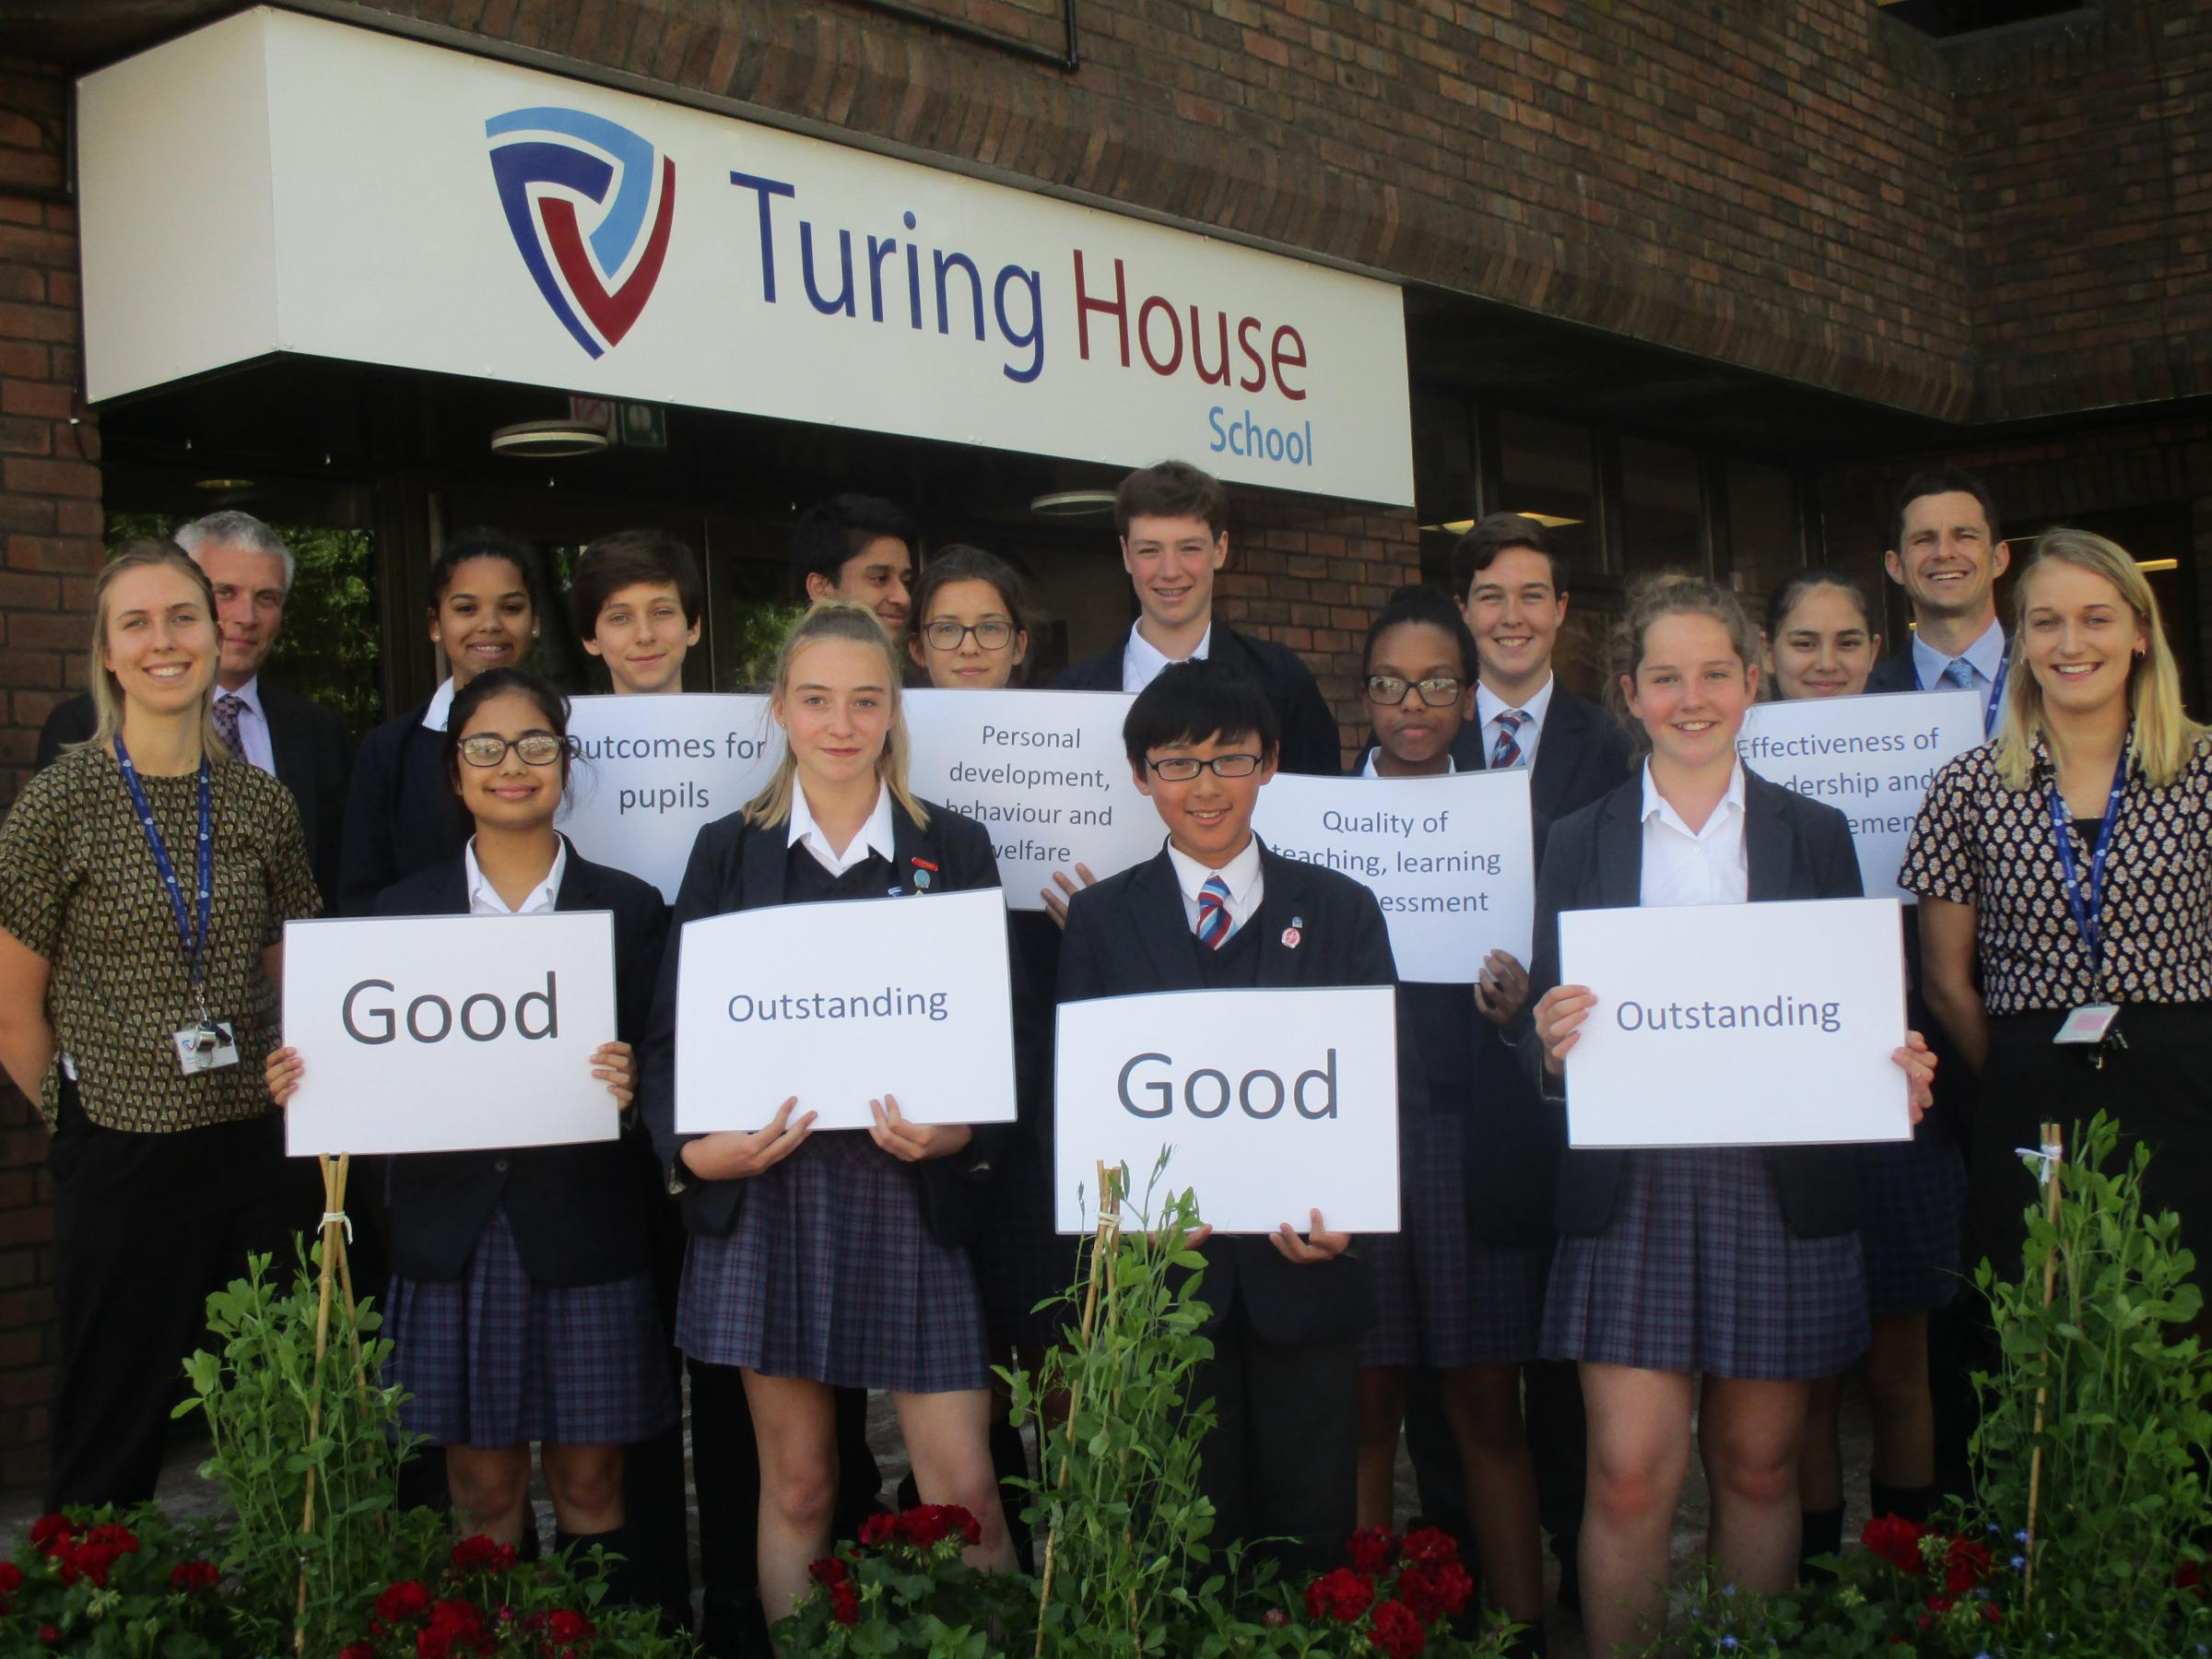 Proud: Turing House School in Teddington celebrates Ofsted report